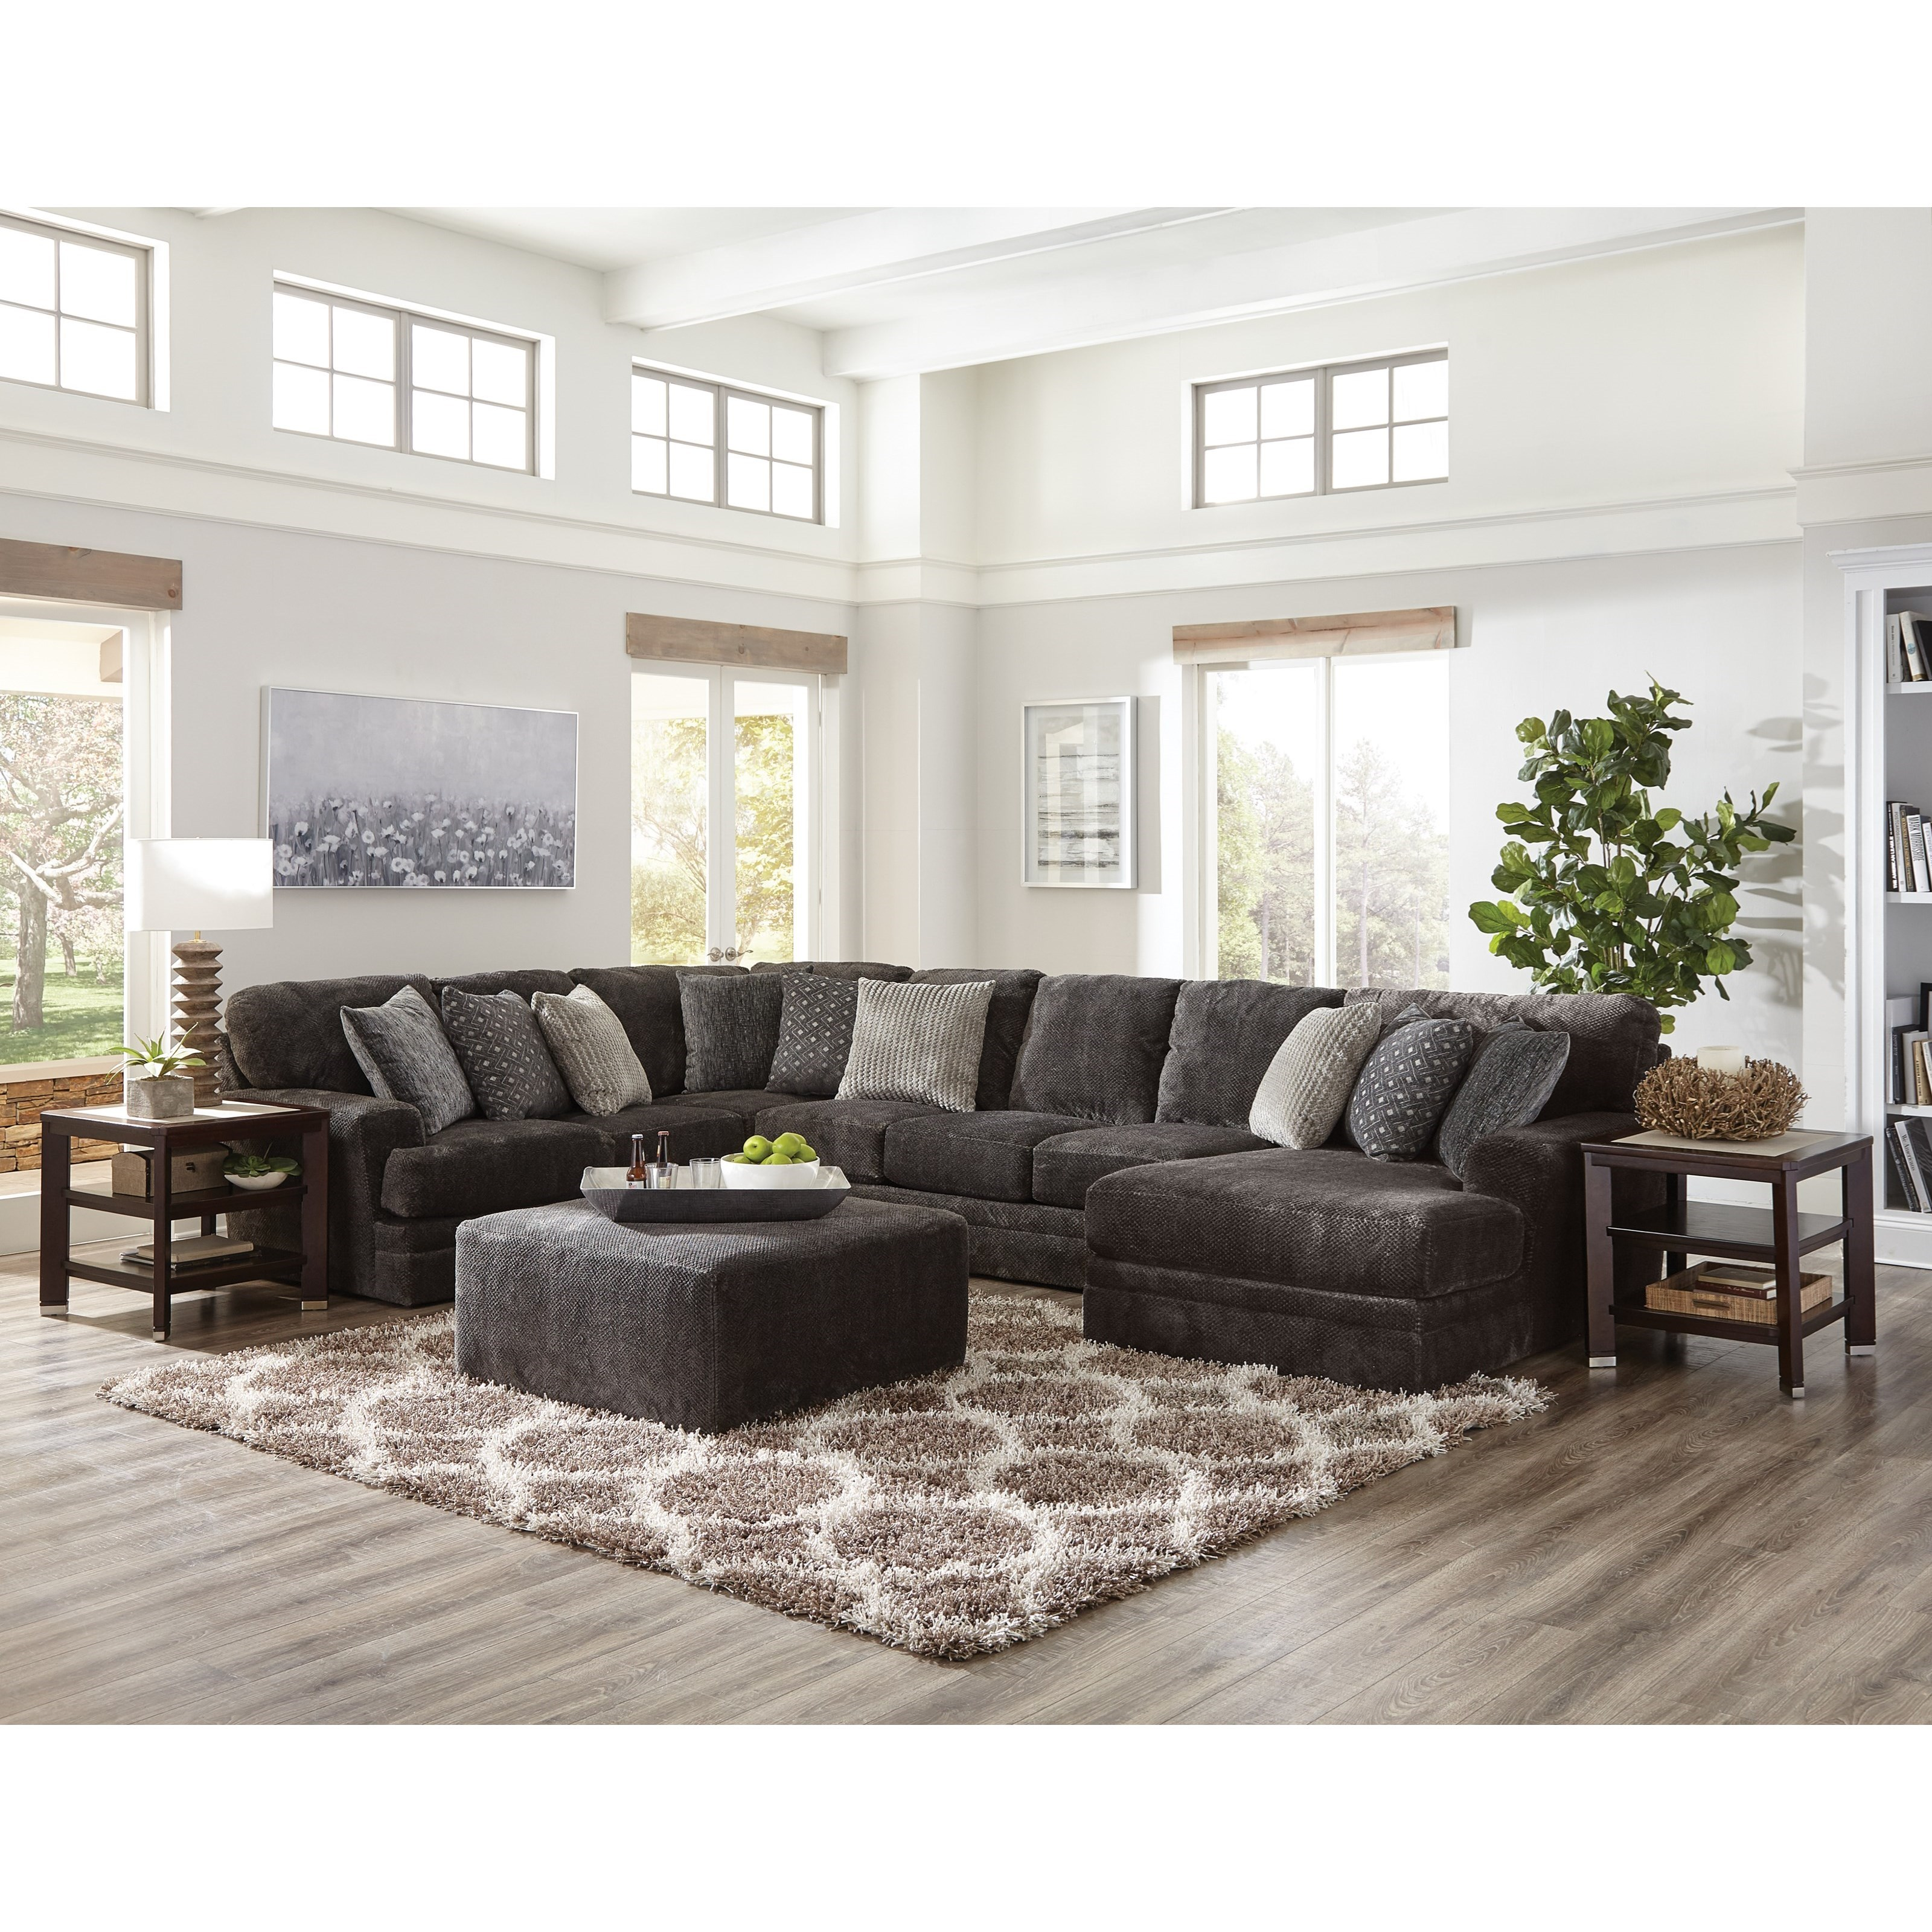 Mammoth Four Piece Sectional With Chaise And Track Arms By Jackson Furniture At Lindy S Furniture Company